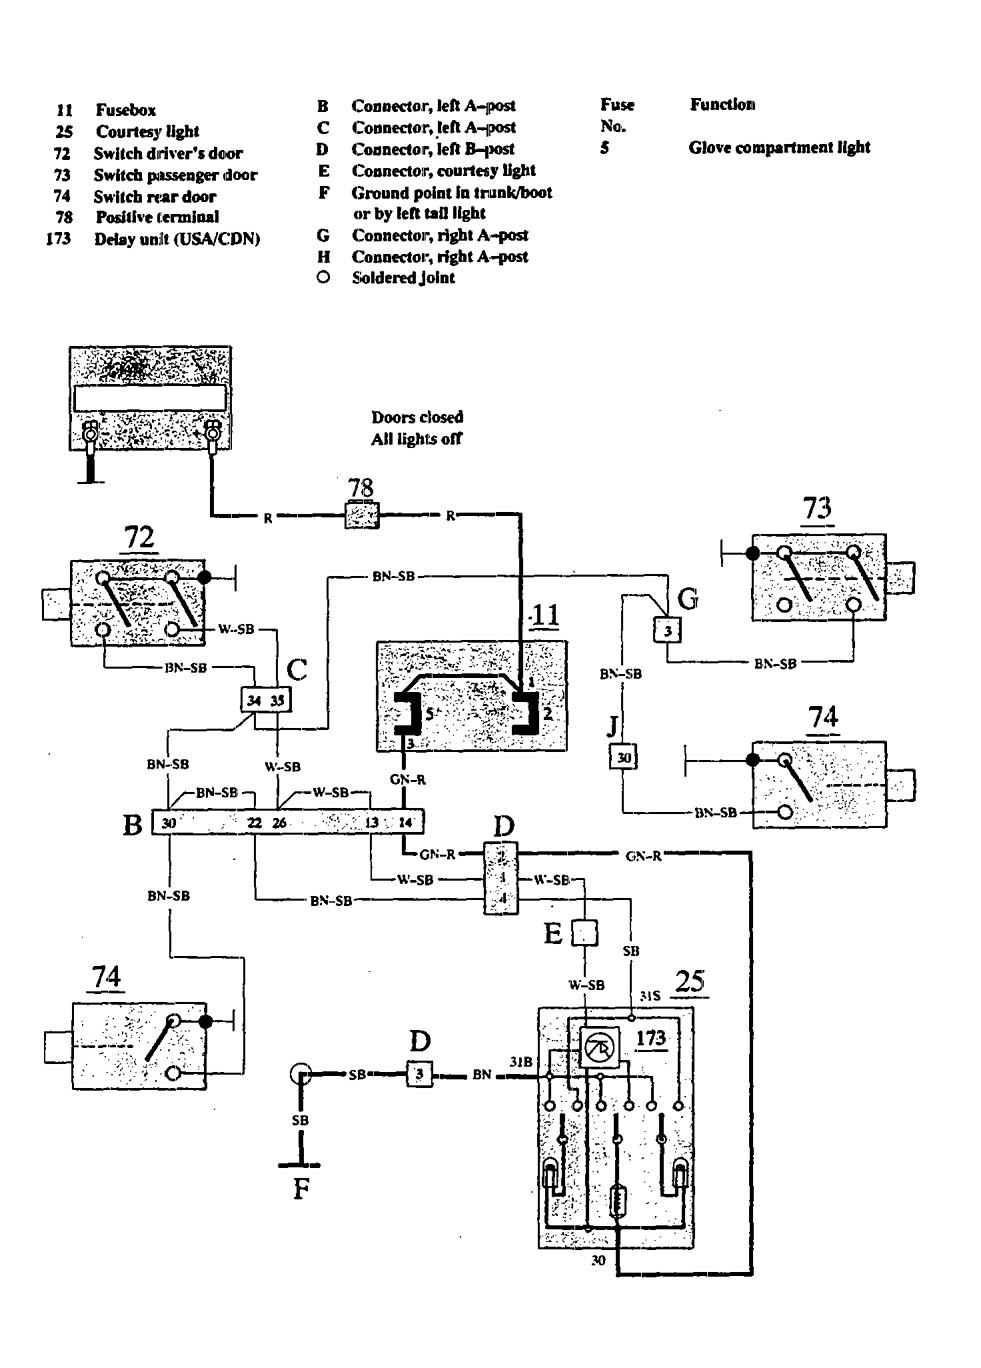 [DIAGRAM] 2002 Mazda 626 Radio Wiring Diagram FULL Version